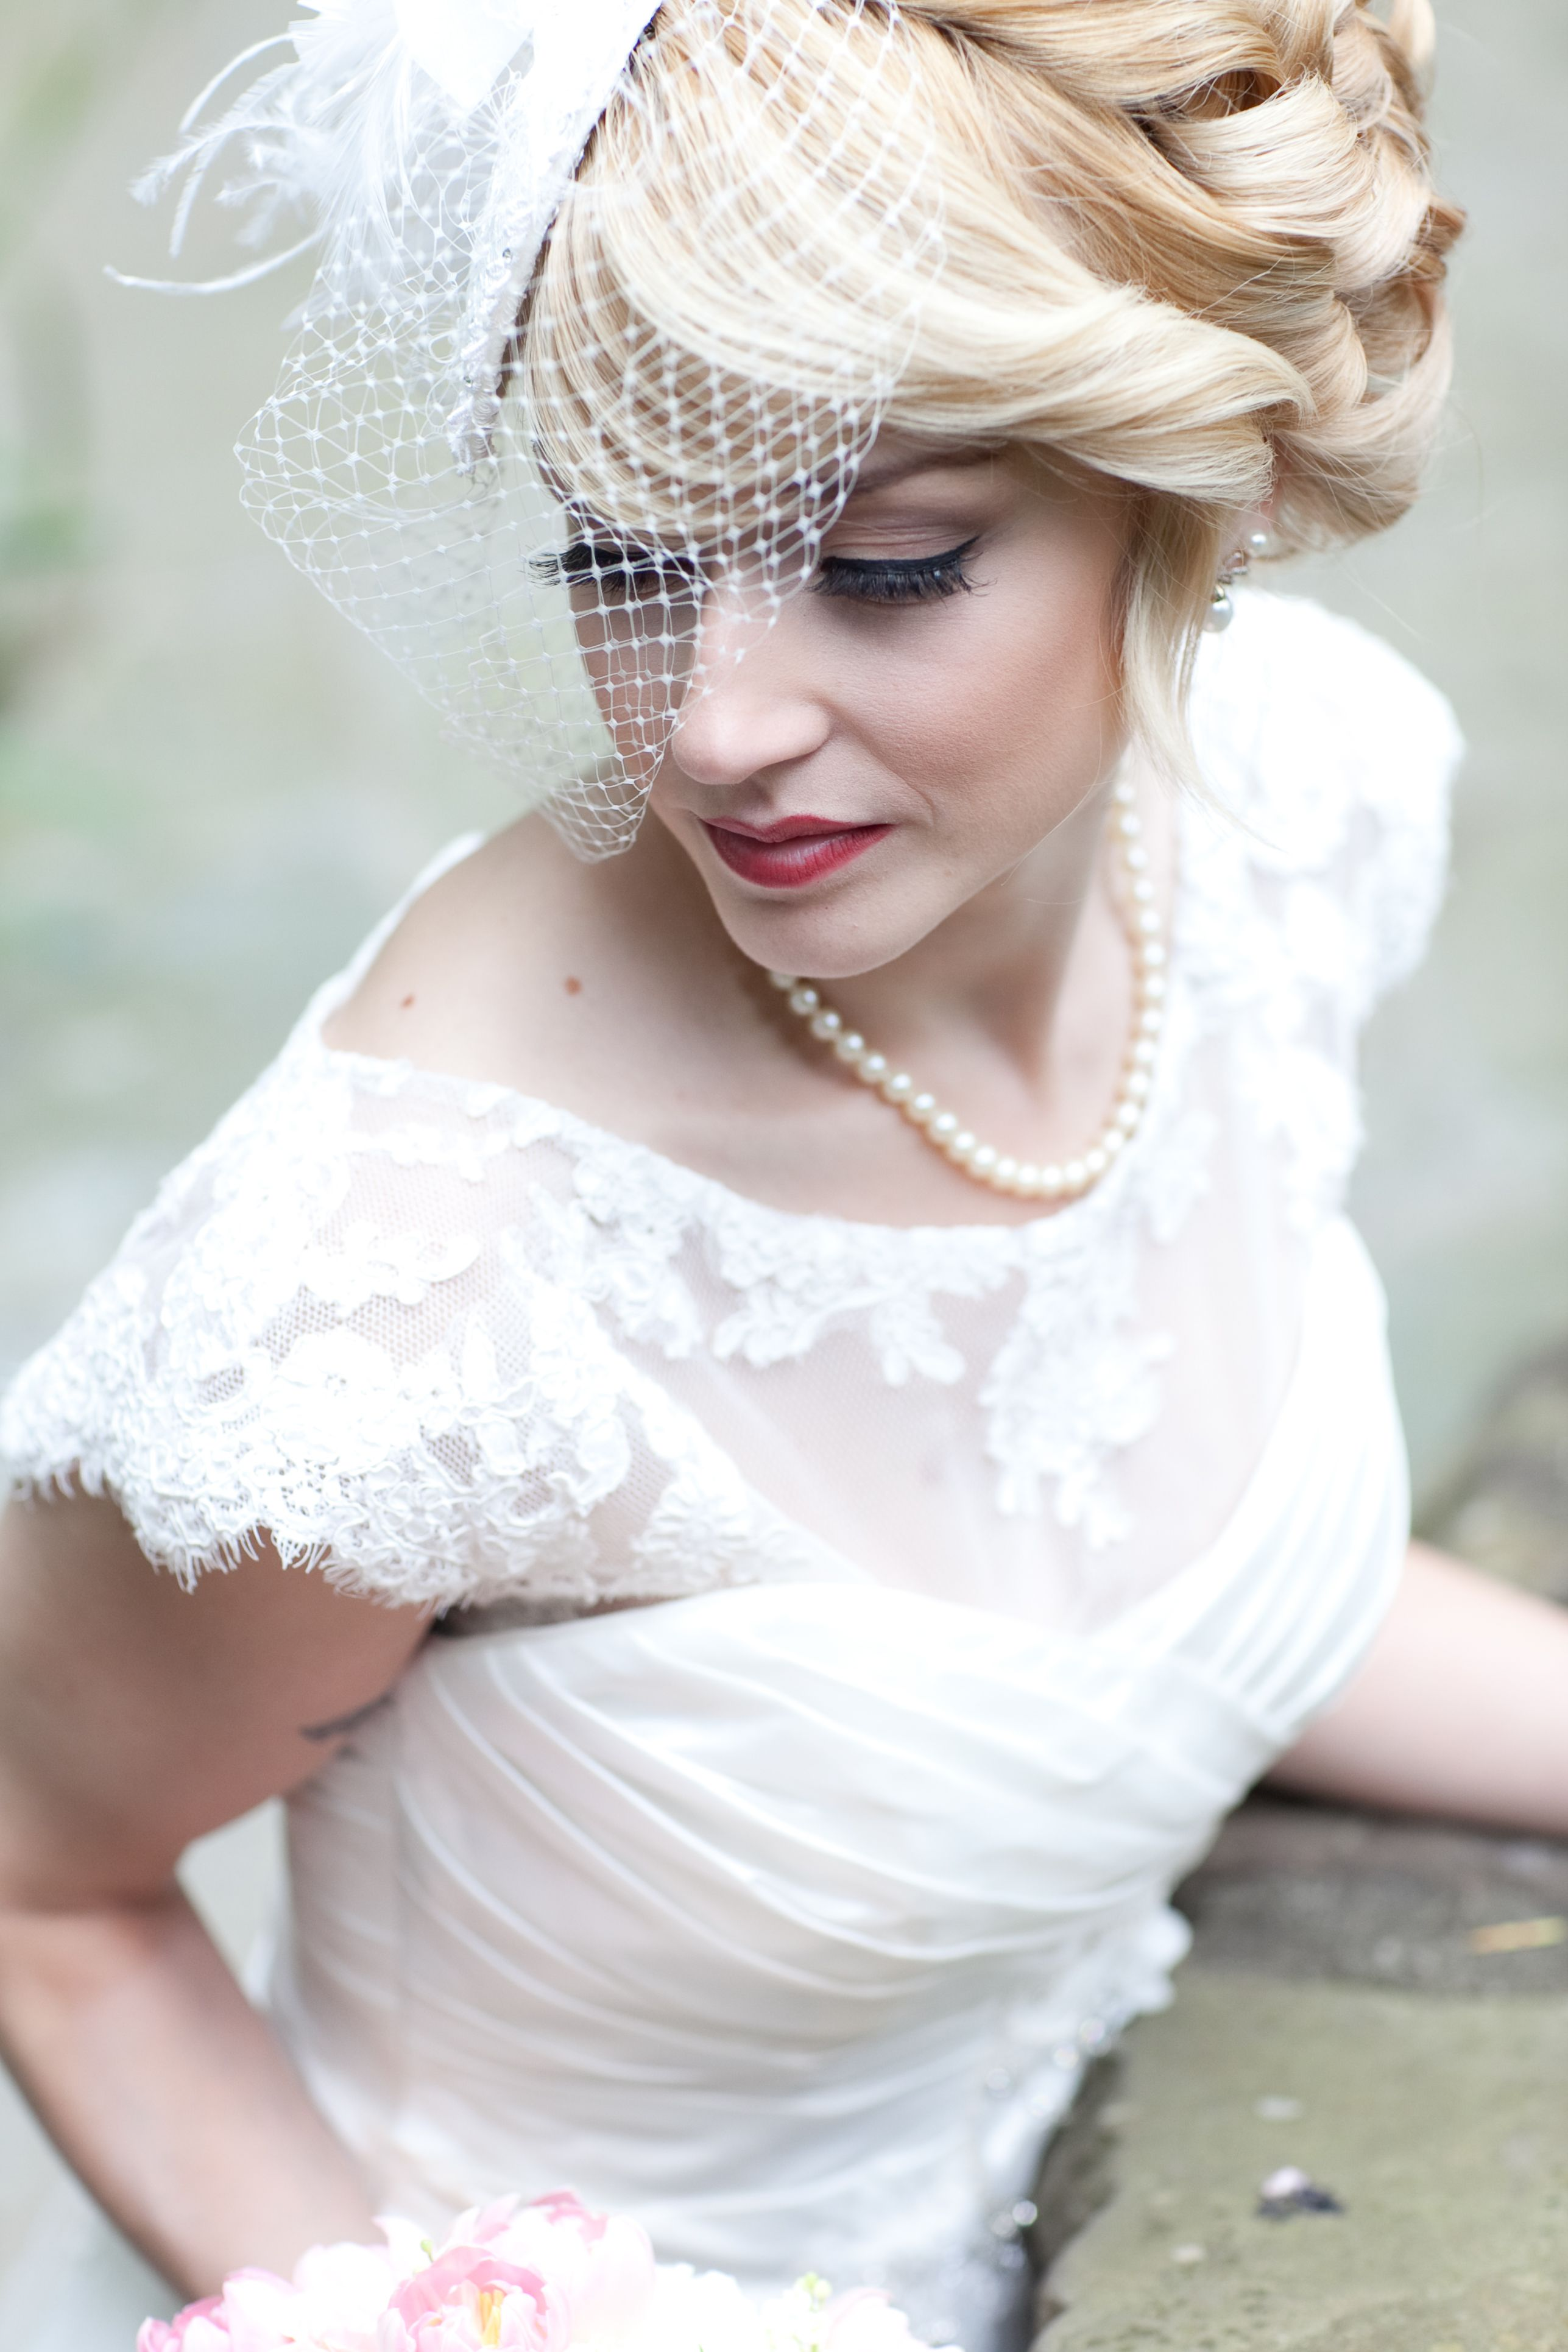 Retro hairstyle with pillbox hat and birdcage veil. Wish this one ...